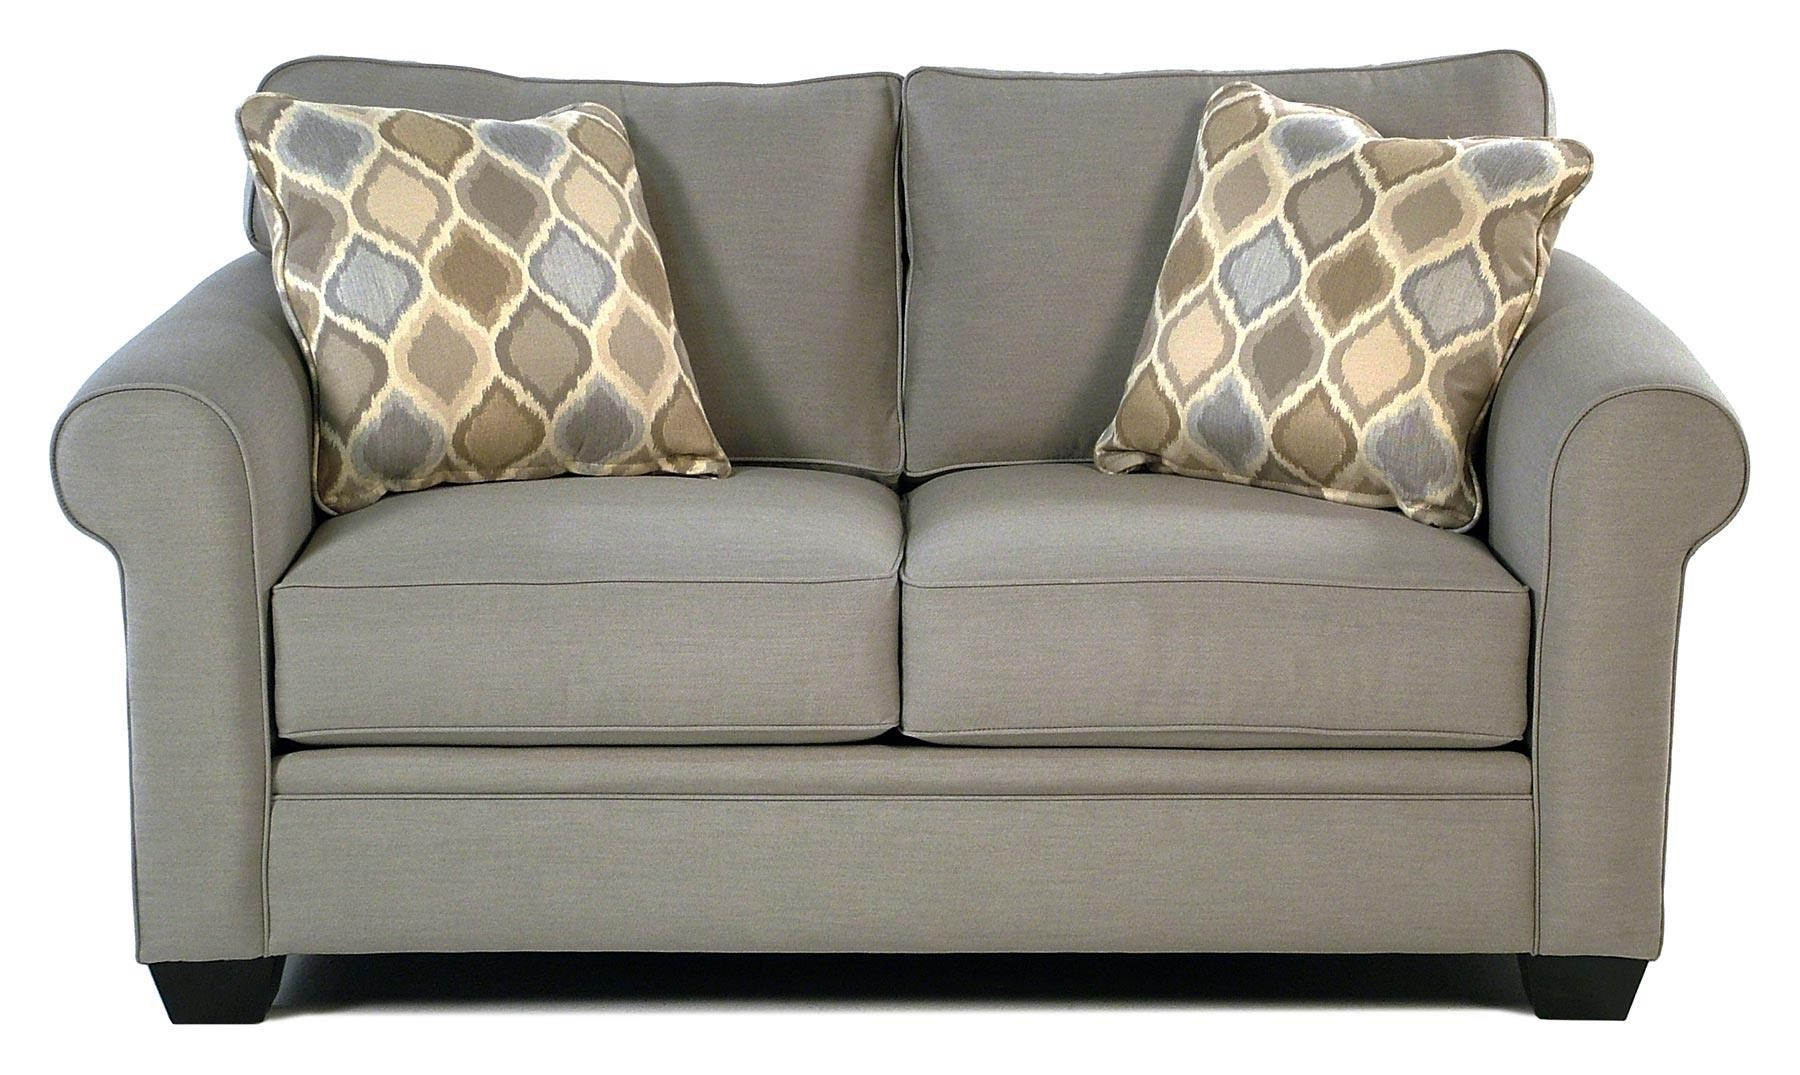 Sofa Fabric Mackenzie Roll Arm Loveseat W Sunbrella Fabric By Jonathan Louis At Rotmans